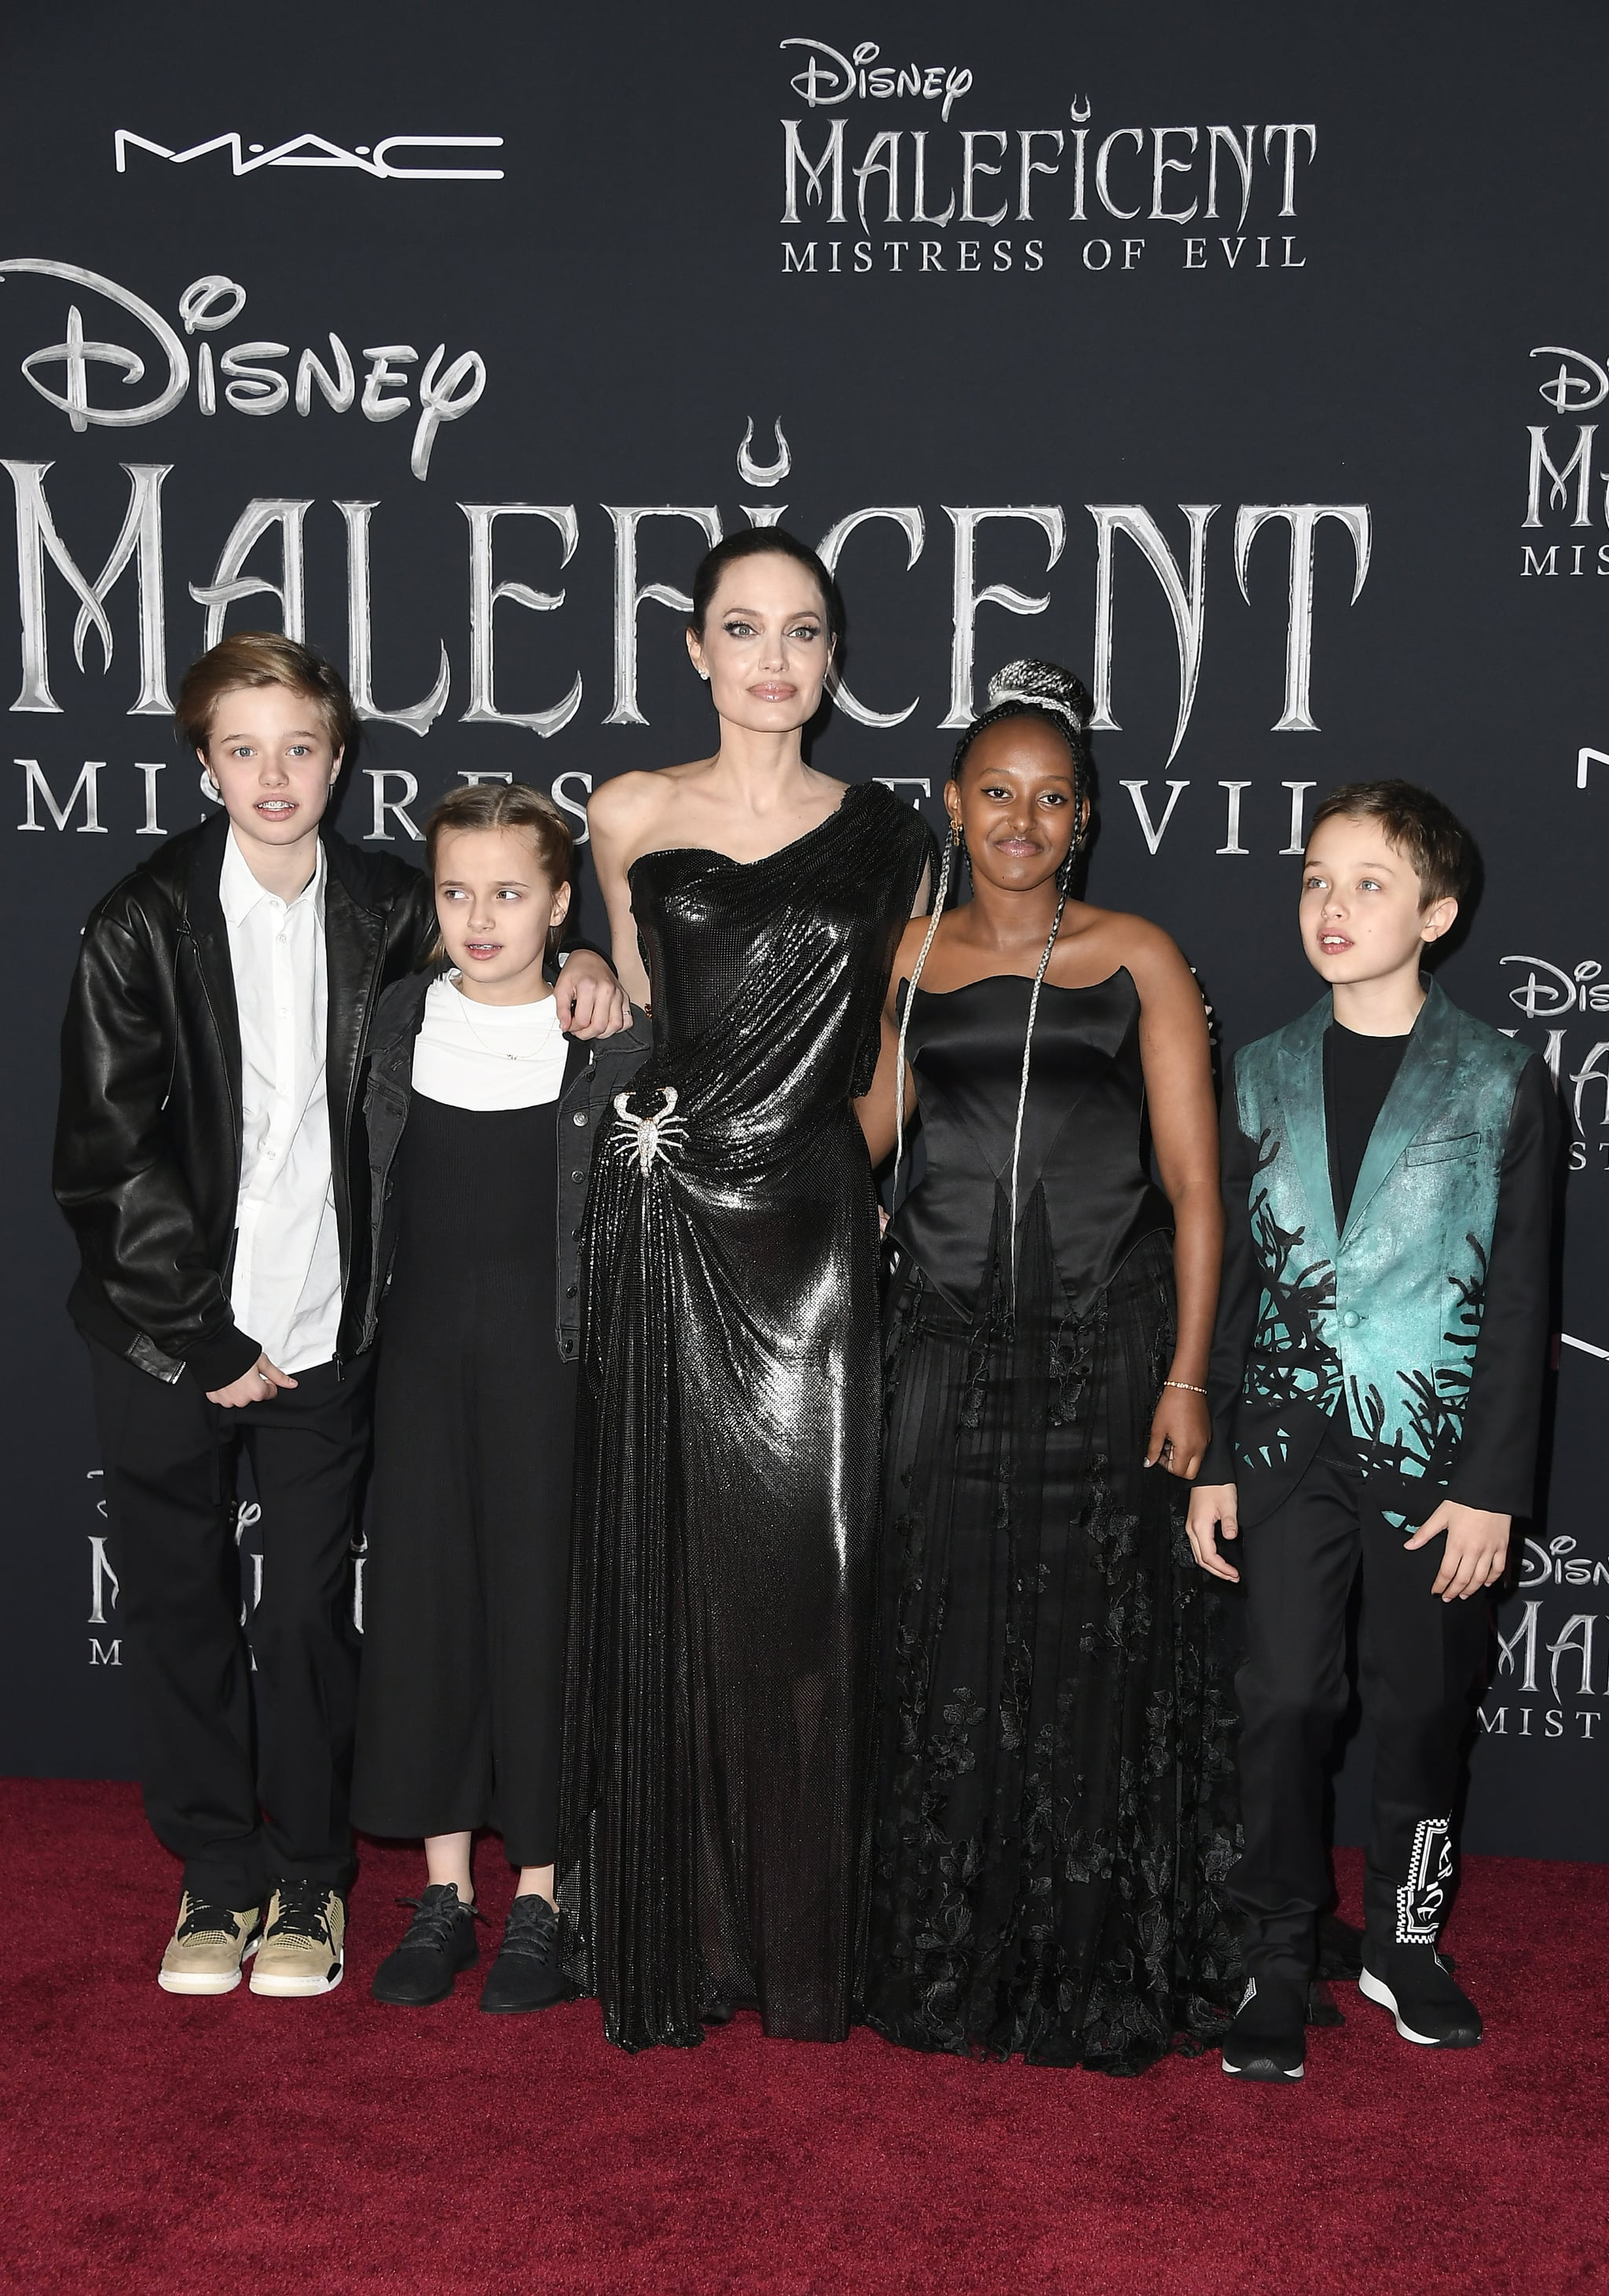 Angelina Jolie And Her Kids At The Maleficent Mistress Of